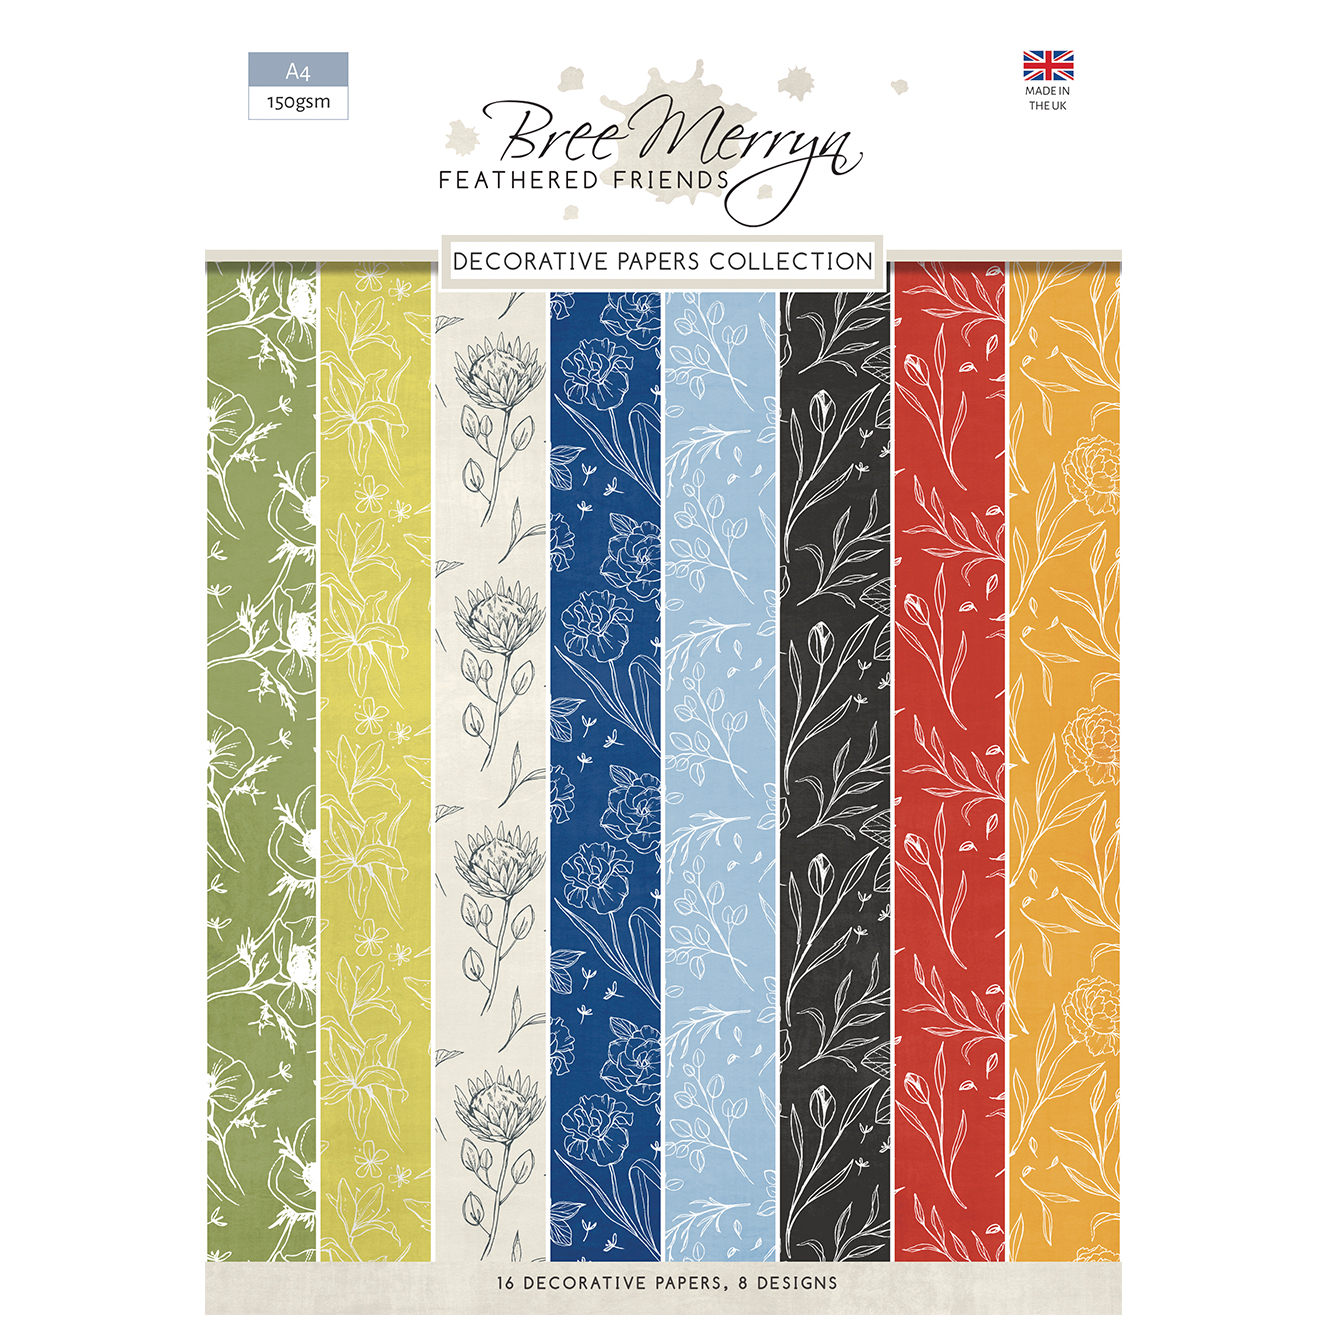 Bree Merryn Feathered Friends A4 Decorative Papers